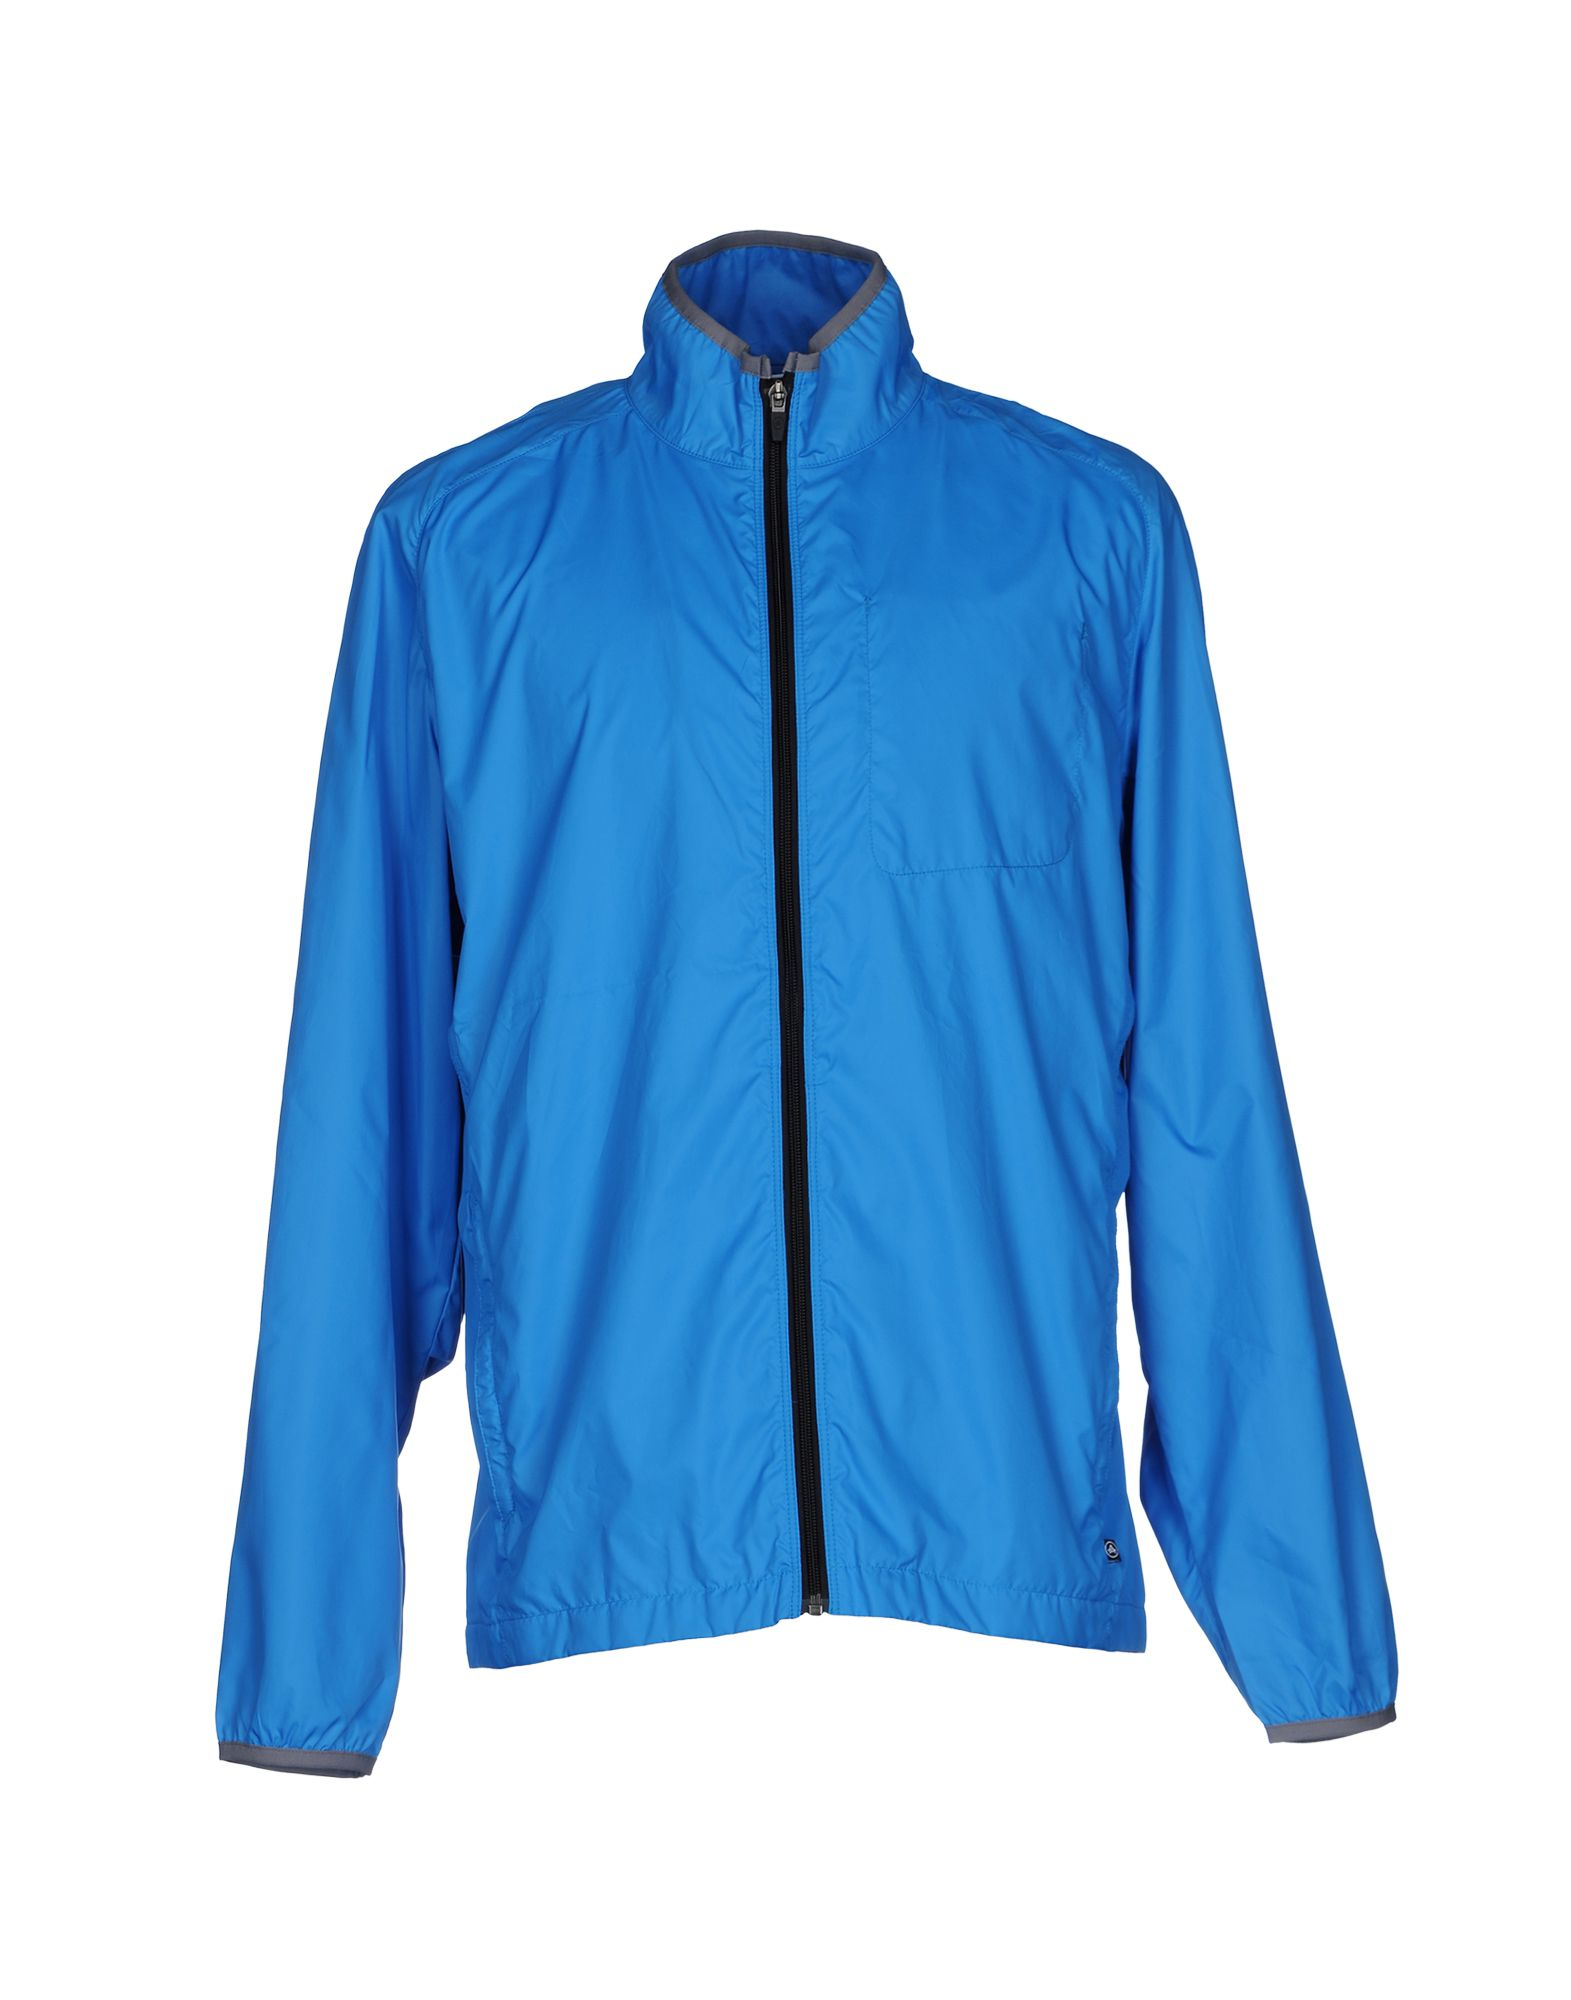 AETHER Jacket in Azure